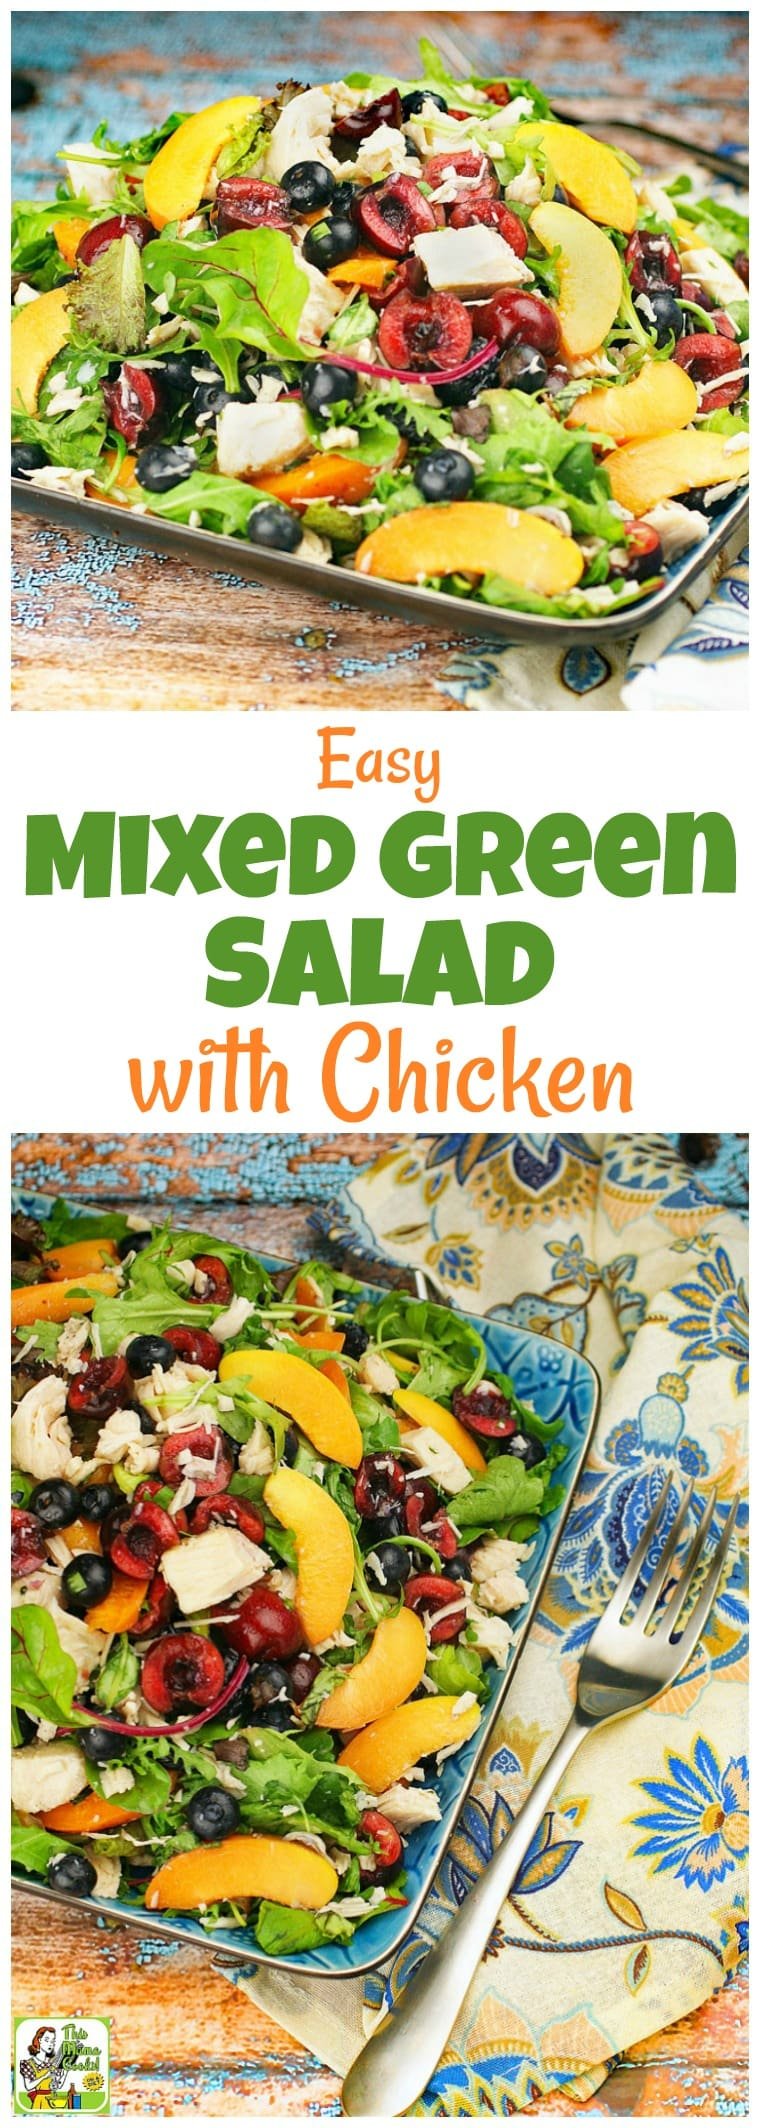 Too hot to cook? This Easy Mixed Green Salad with Chicken recipe makes a satisfying weeknight meal. There\'s no cooking since it uses canned chicken breast. Click to get this healthy mixed green salad with chicken recipe that takes under 20 minutes to make, is easy to prepare, and uses seasonal fruits, too. #chicken #salad #easy #recipe #chicken #healthyrecipe #chickensalad #salad #glutenfree #dinner #healthyrecipes #recipeoftheday #easydinner #nocook #chickenrecipe